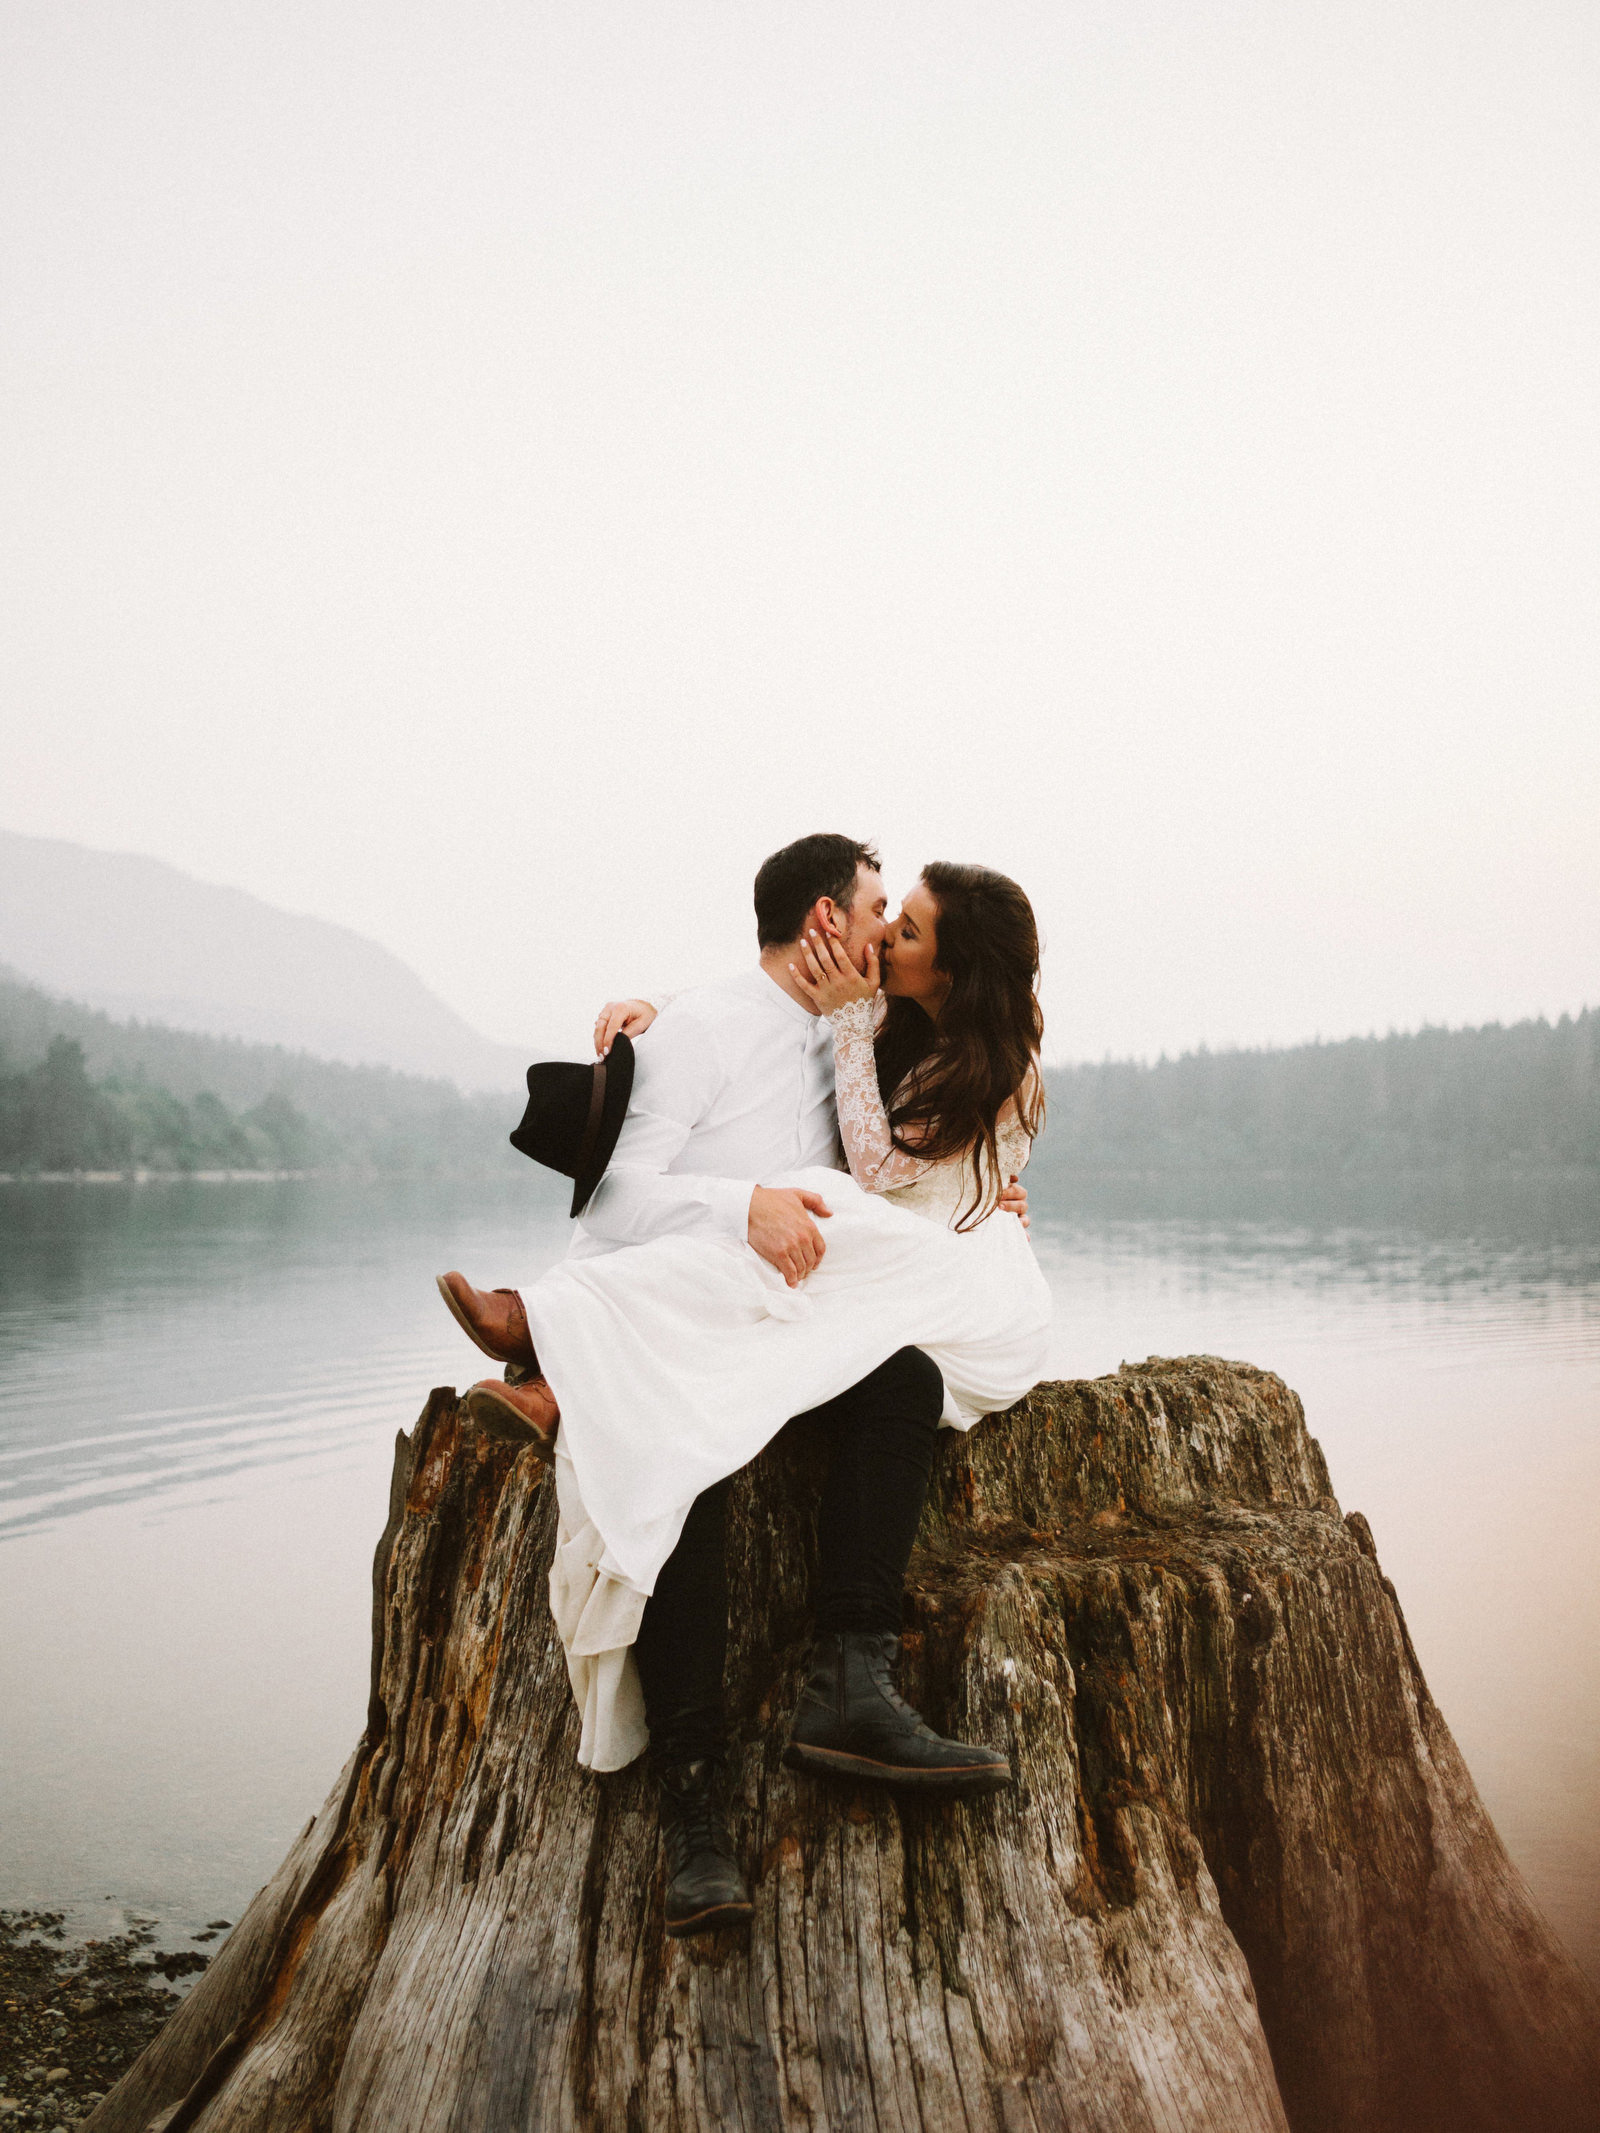 athena-and-camron-seattle-elopement-wedding-benj-haisch-rattlesnake-lake-christian-couple-goals90